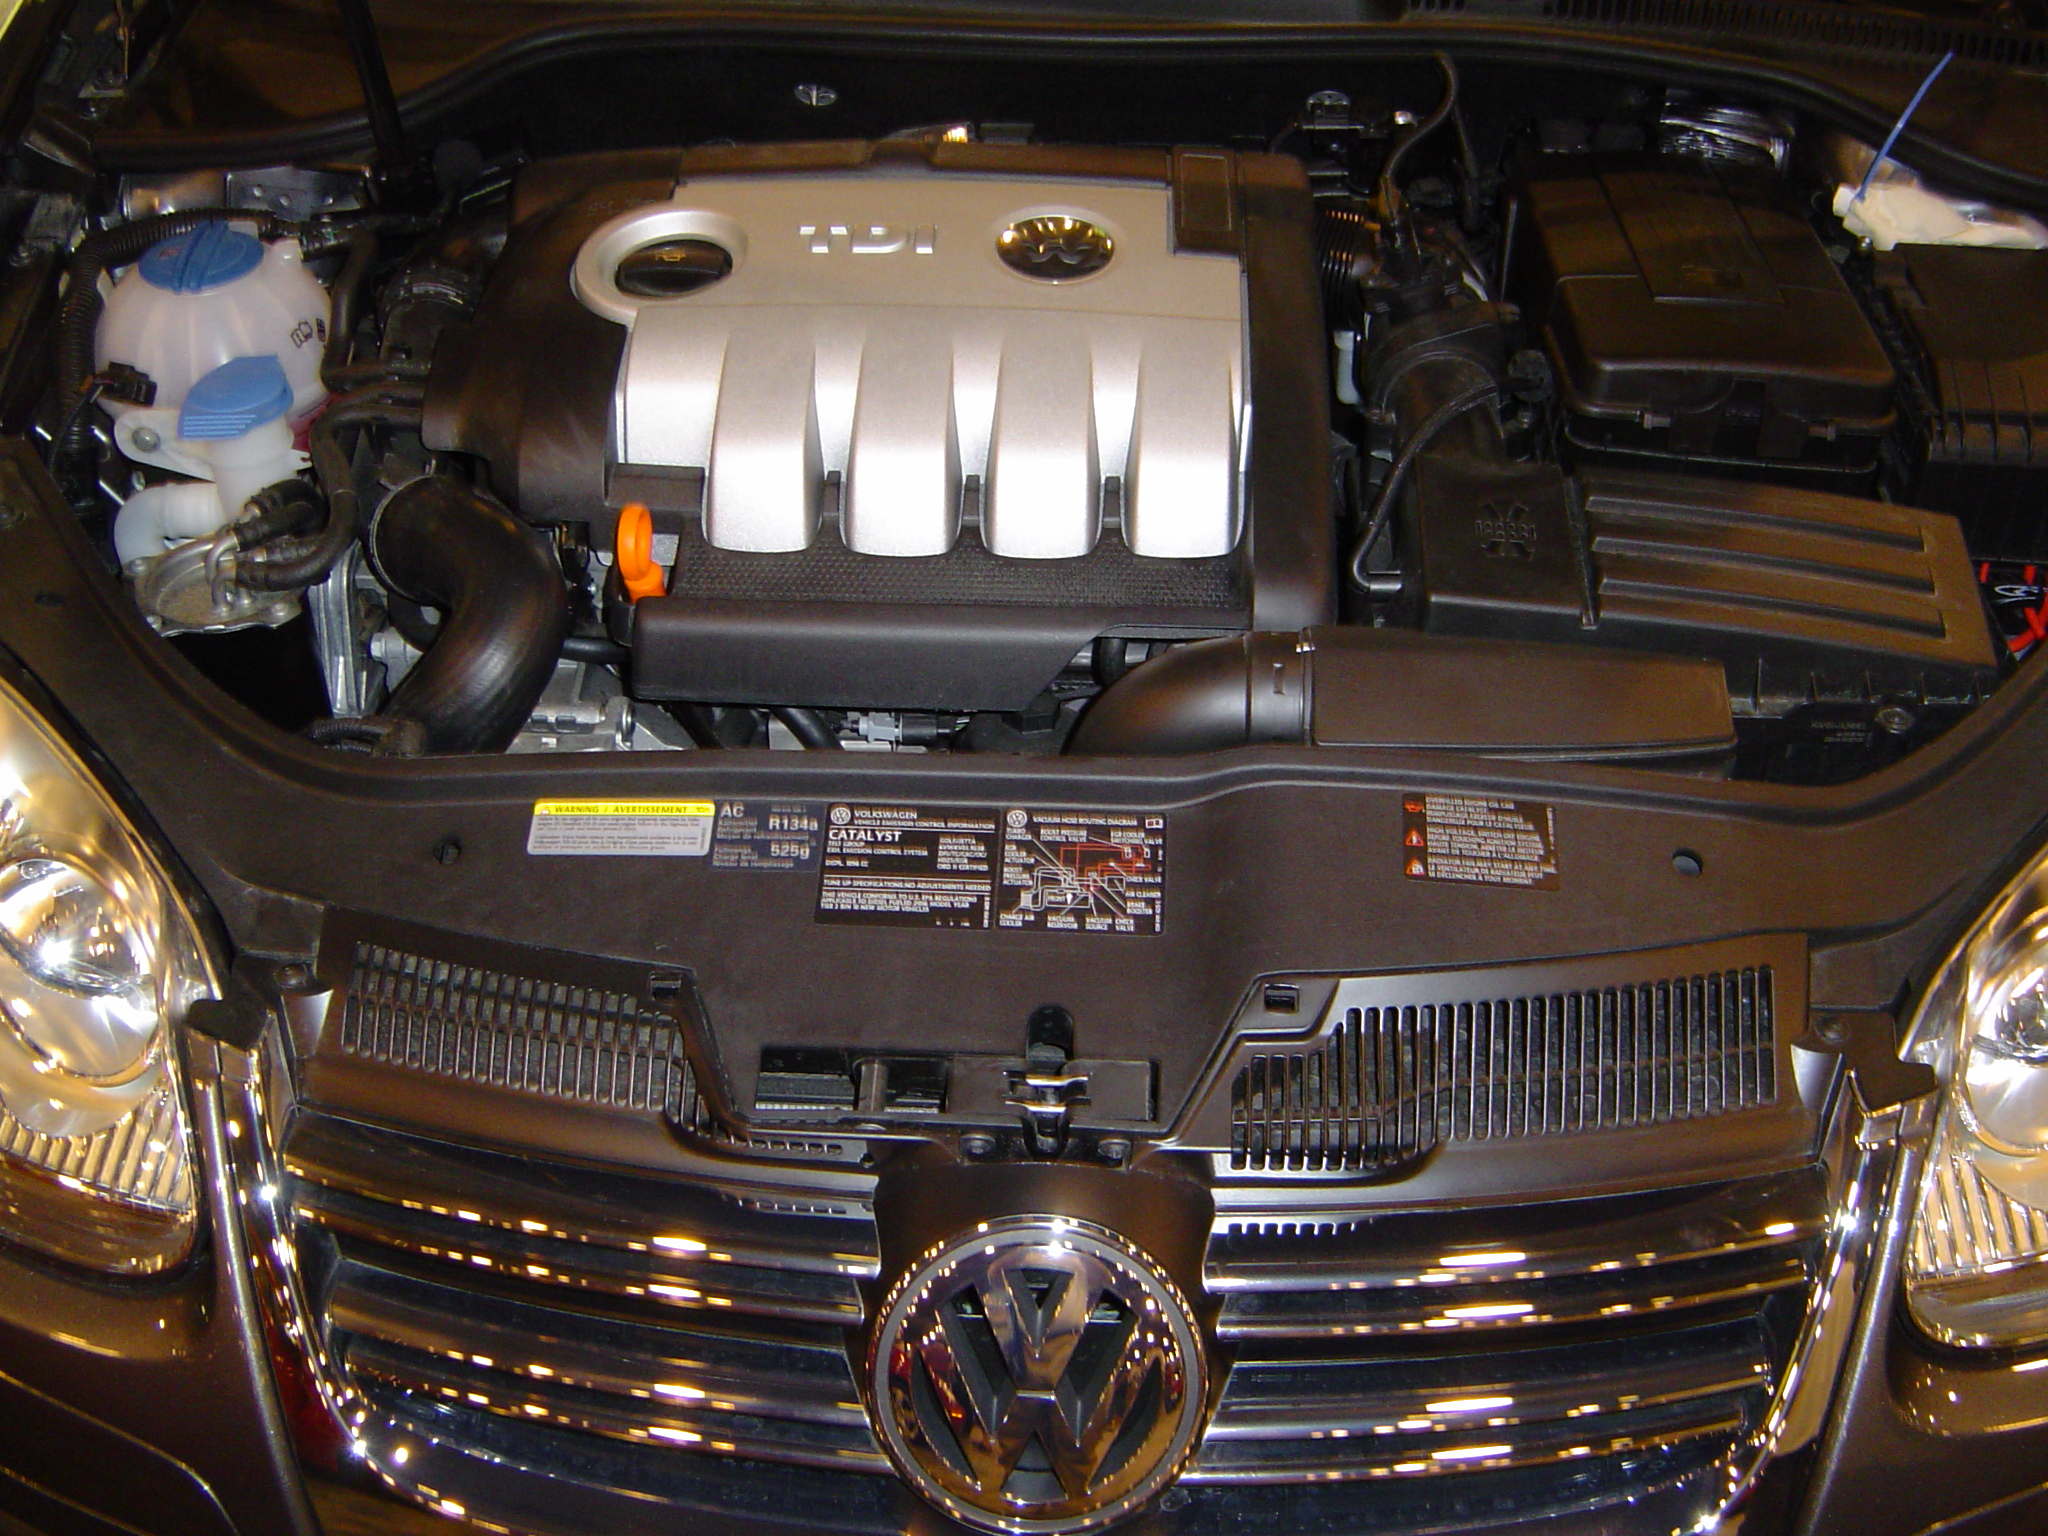 Audi a3 19 tdi engine oil type